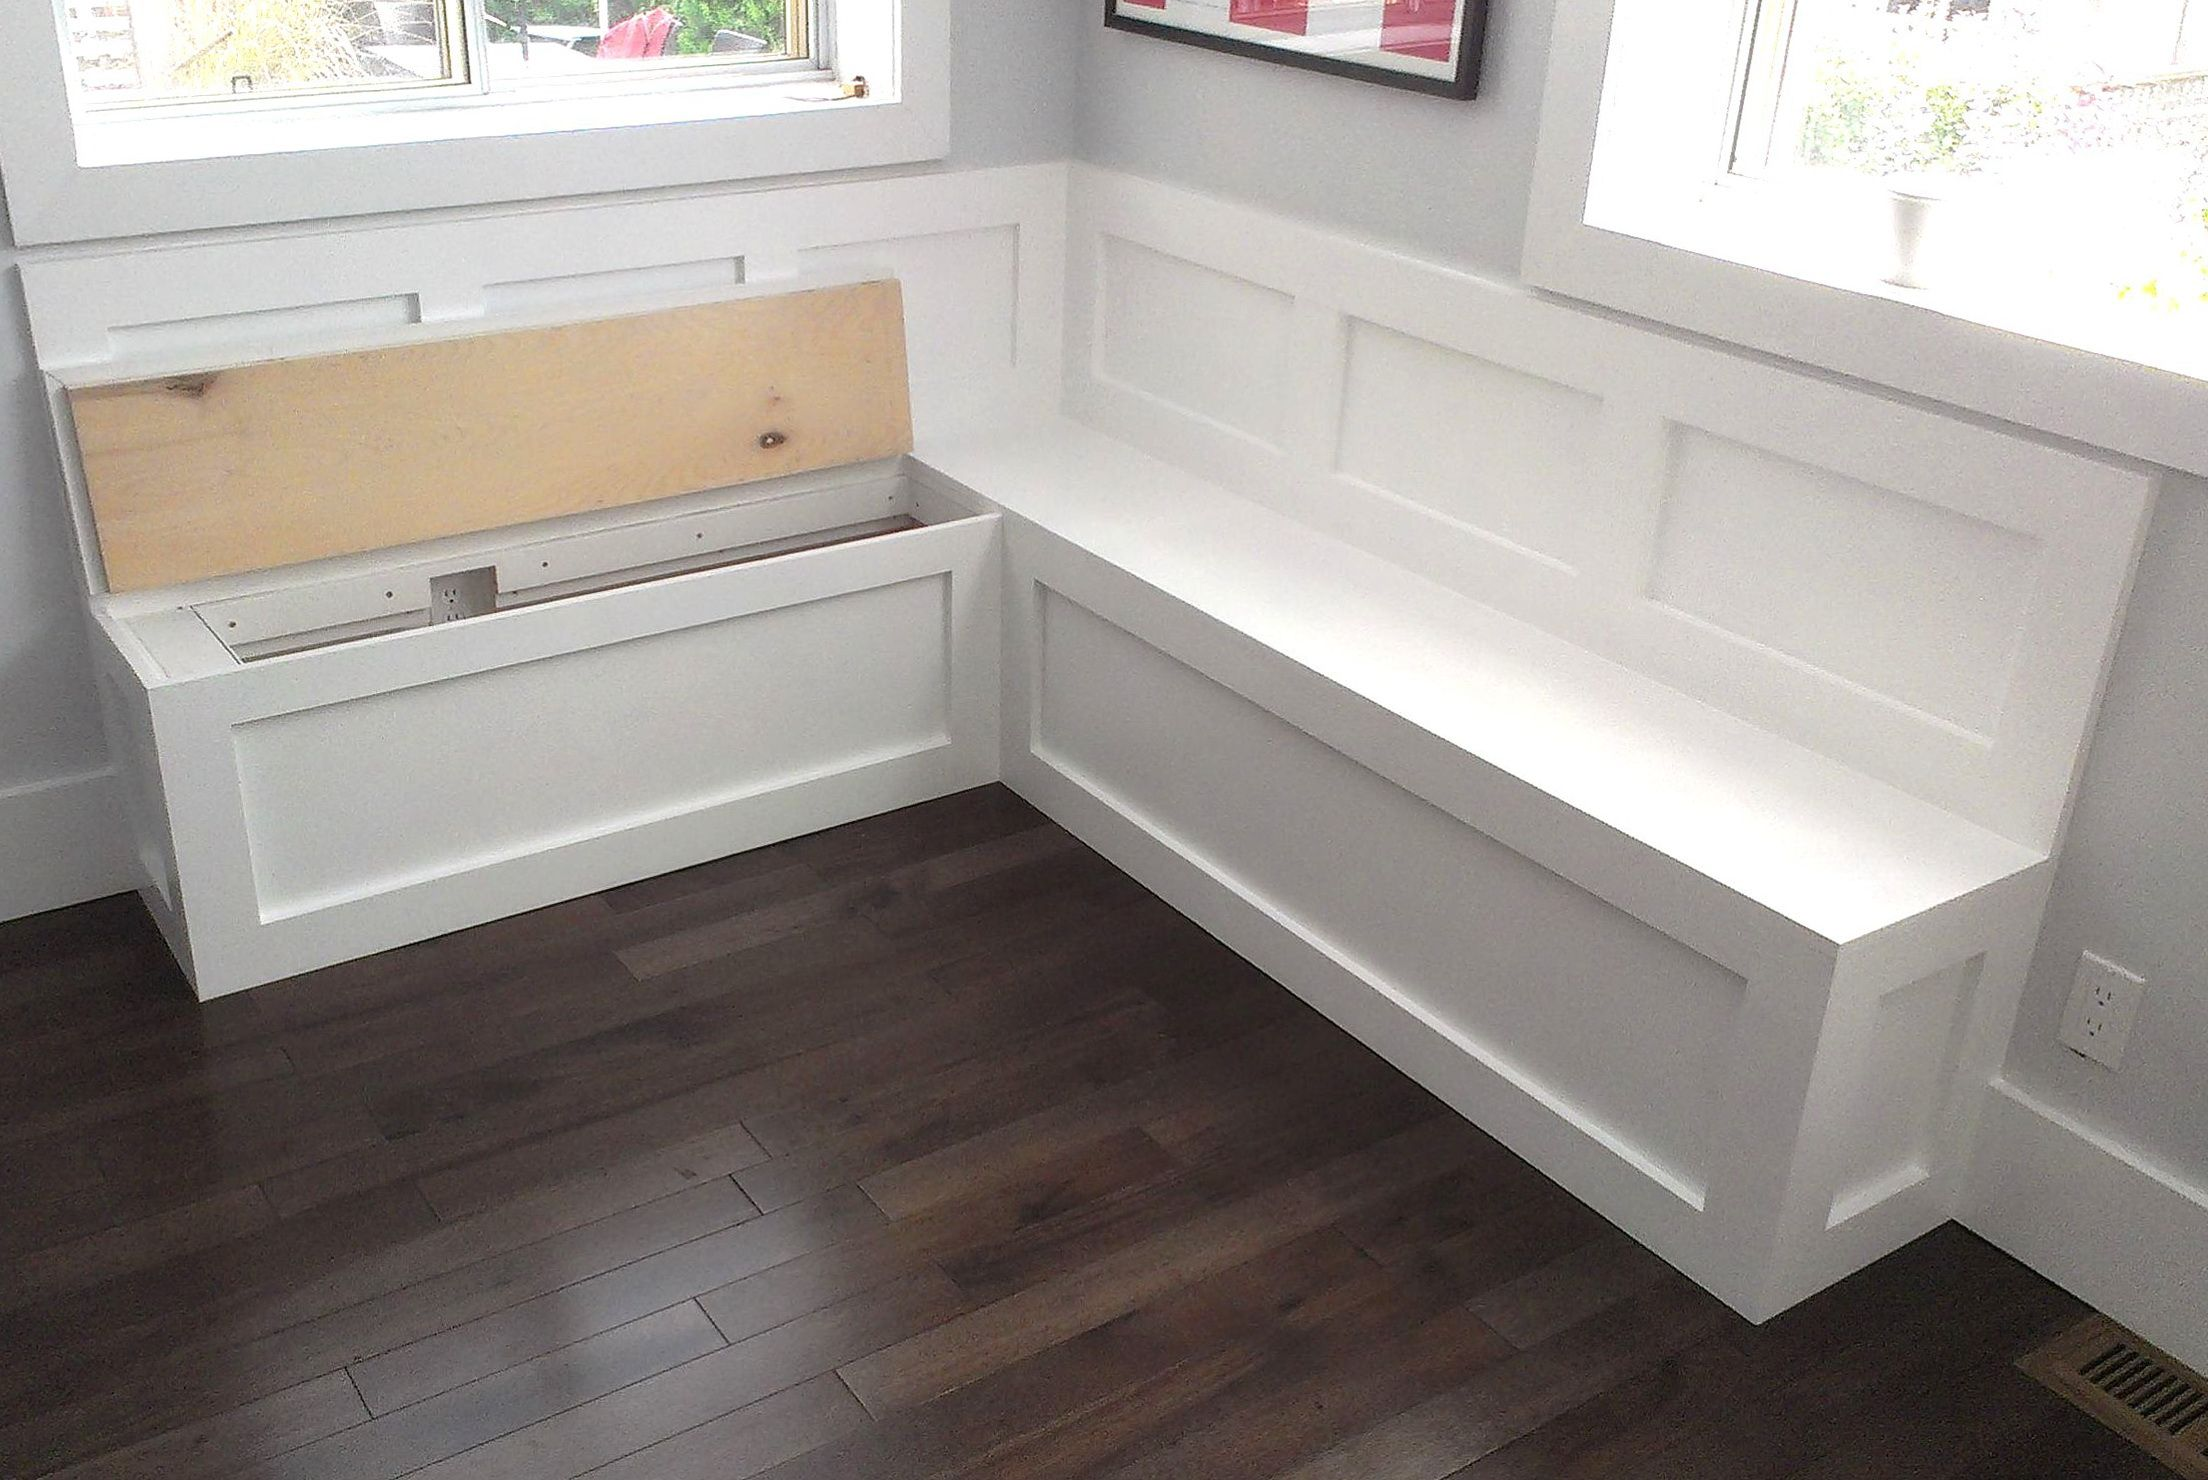 Storage banquette seating bench for kitchen